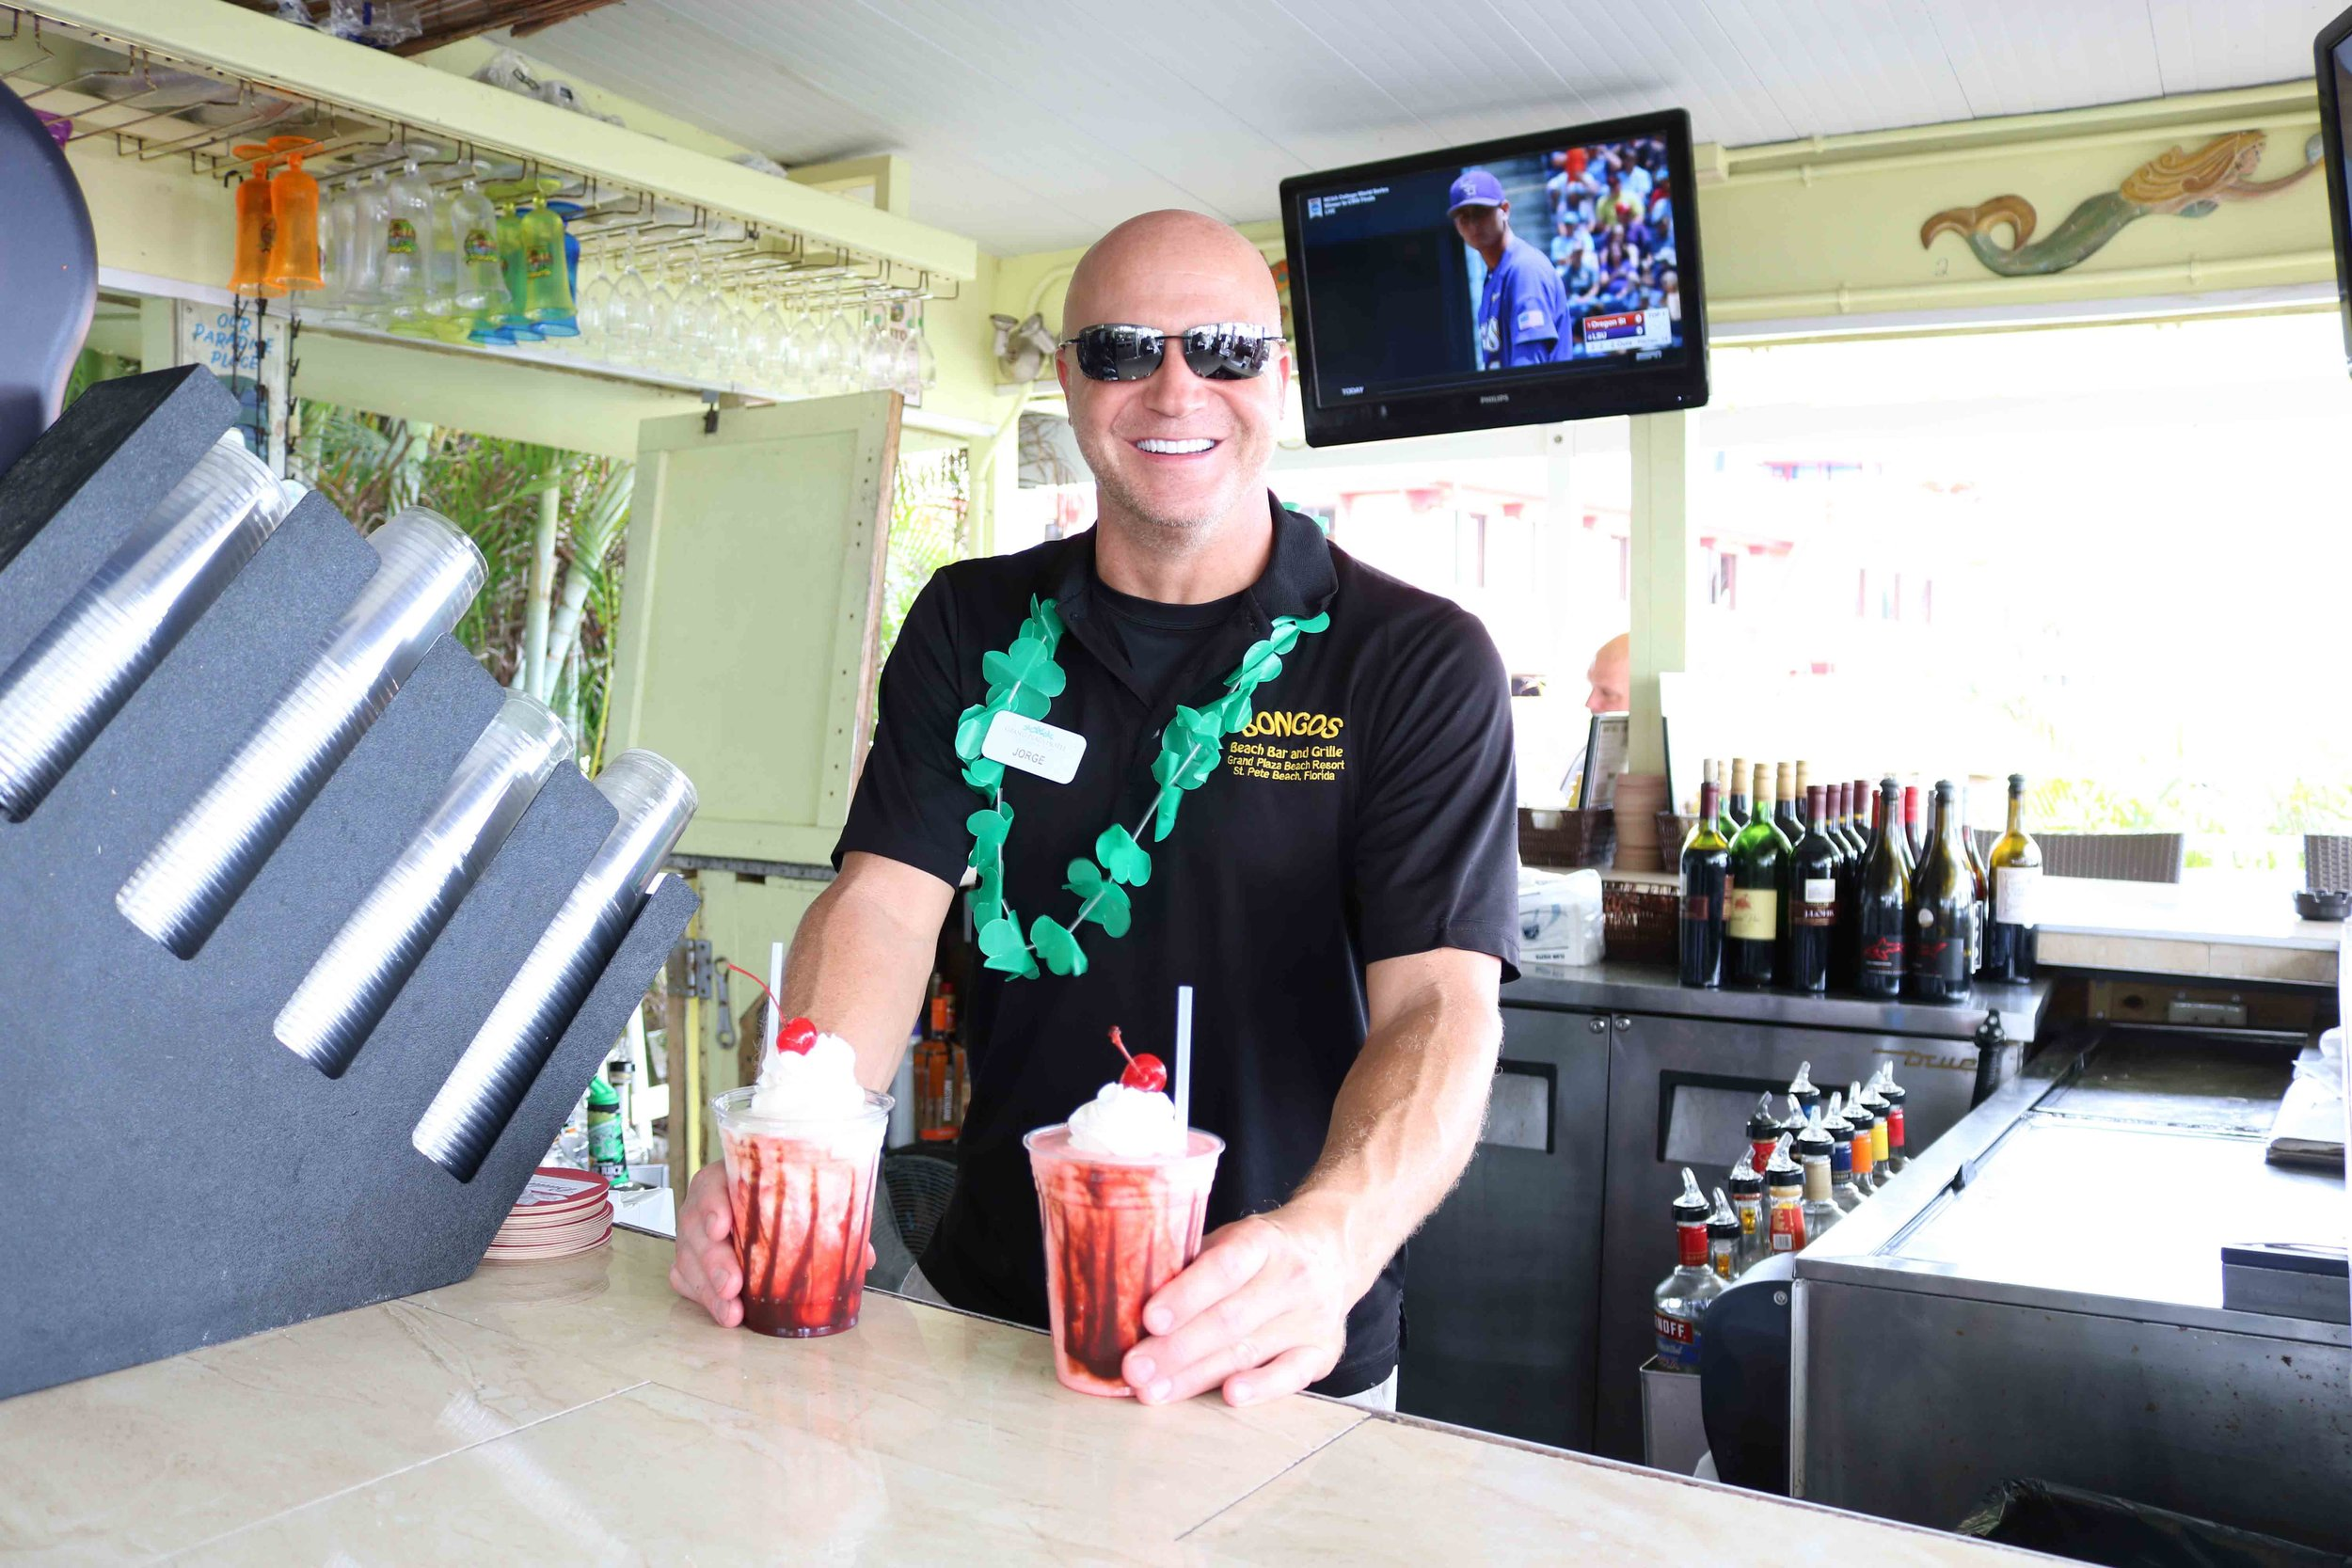 Serving cold beach drinks for the 2017 award party